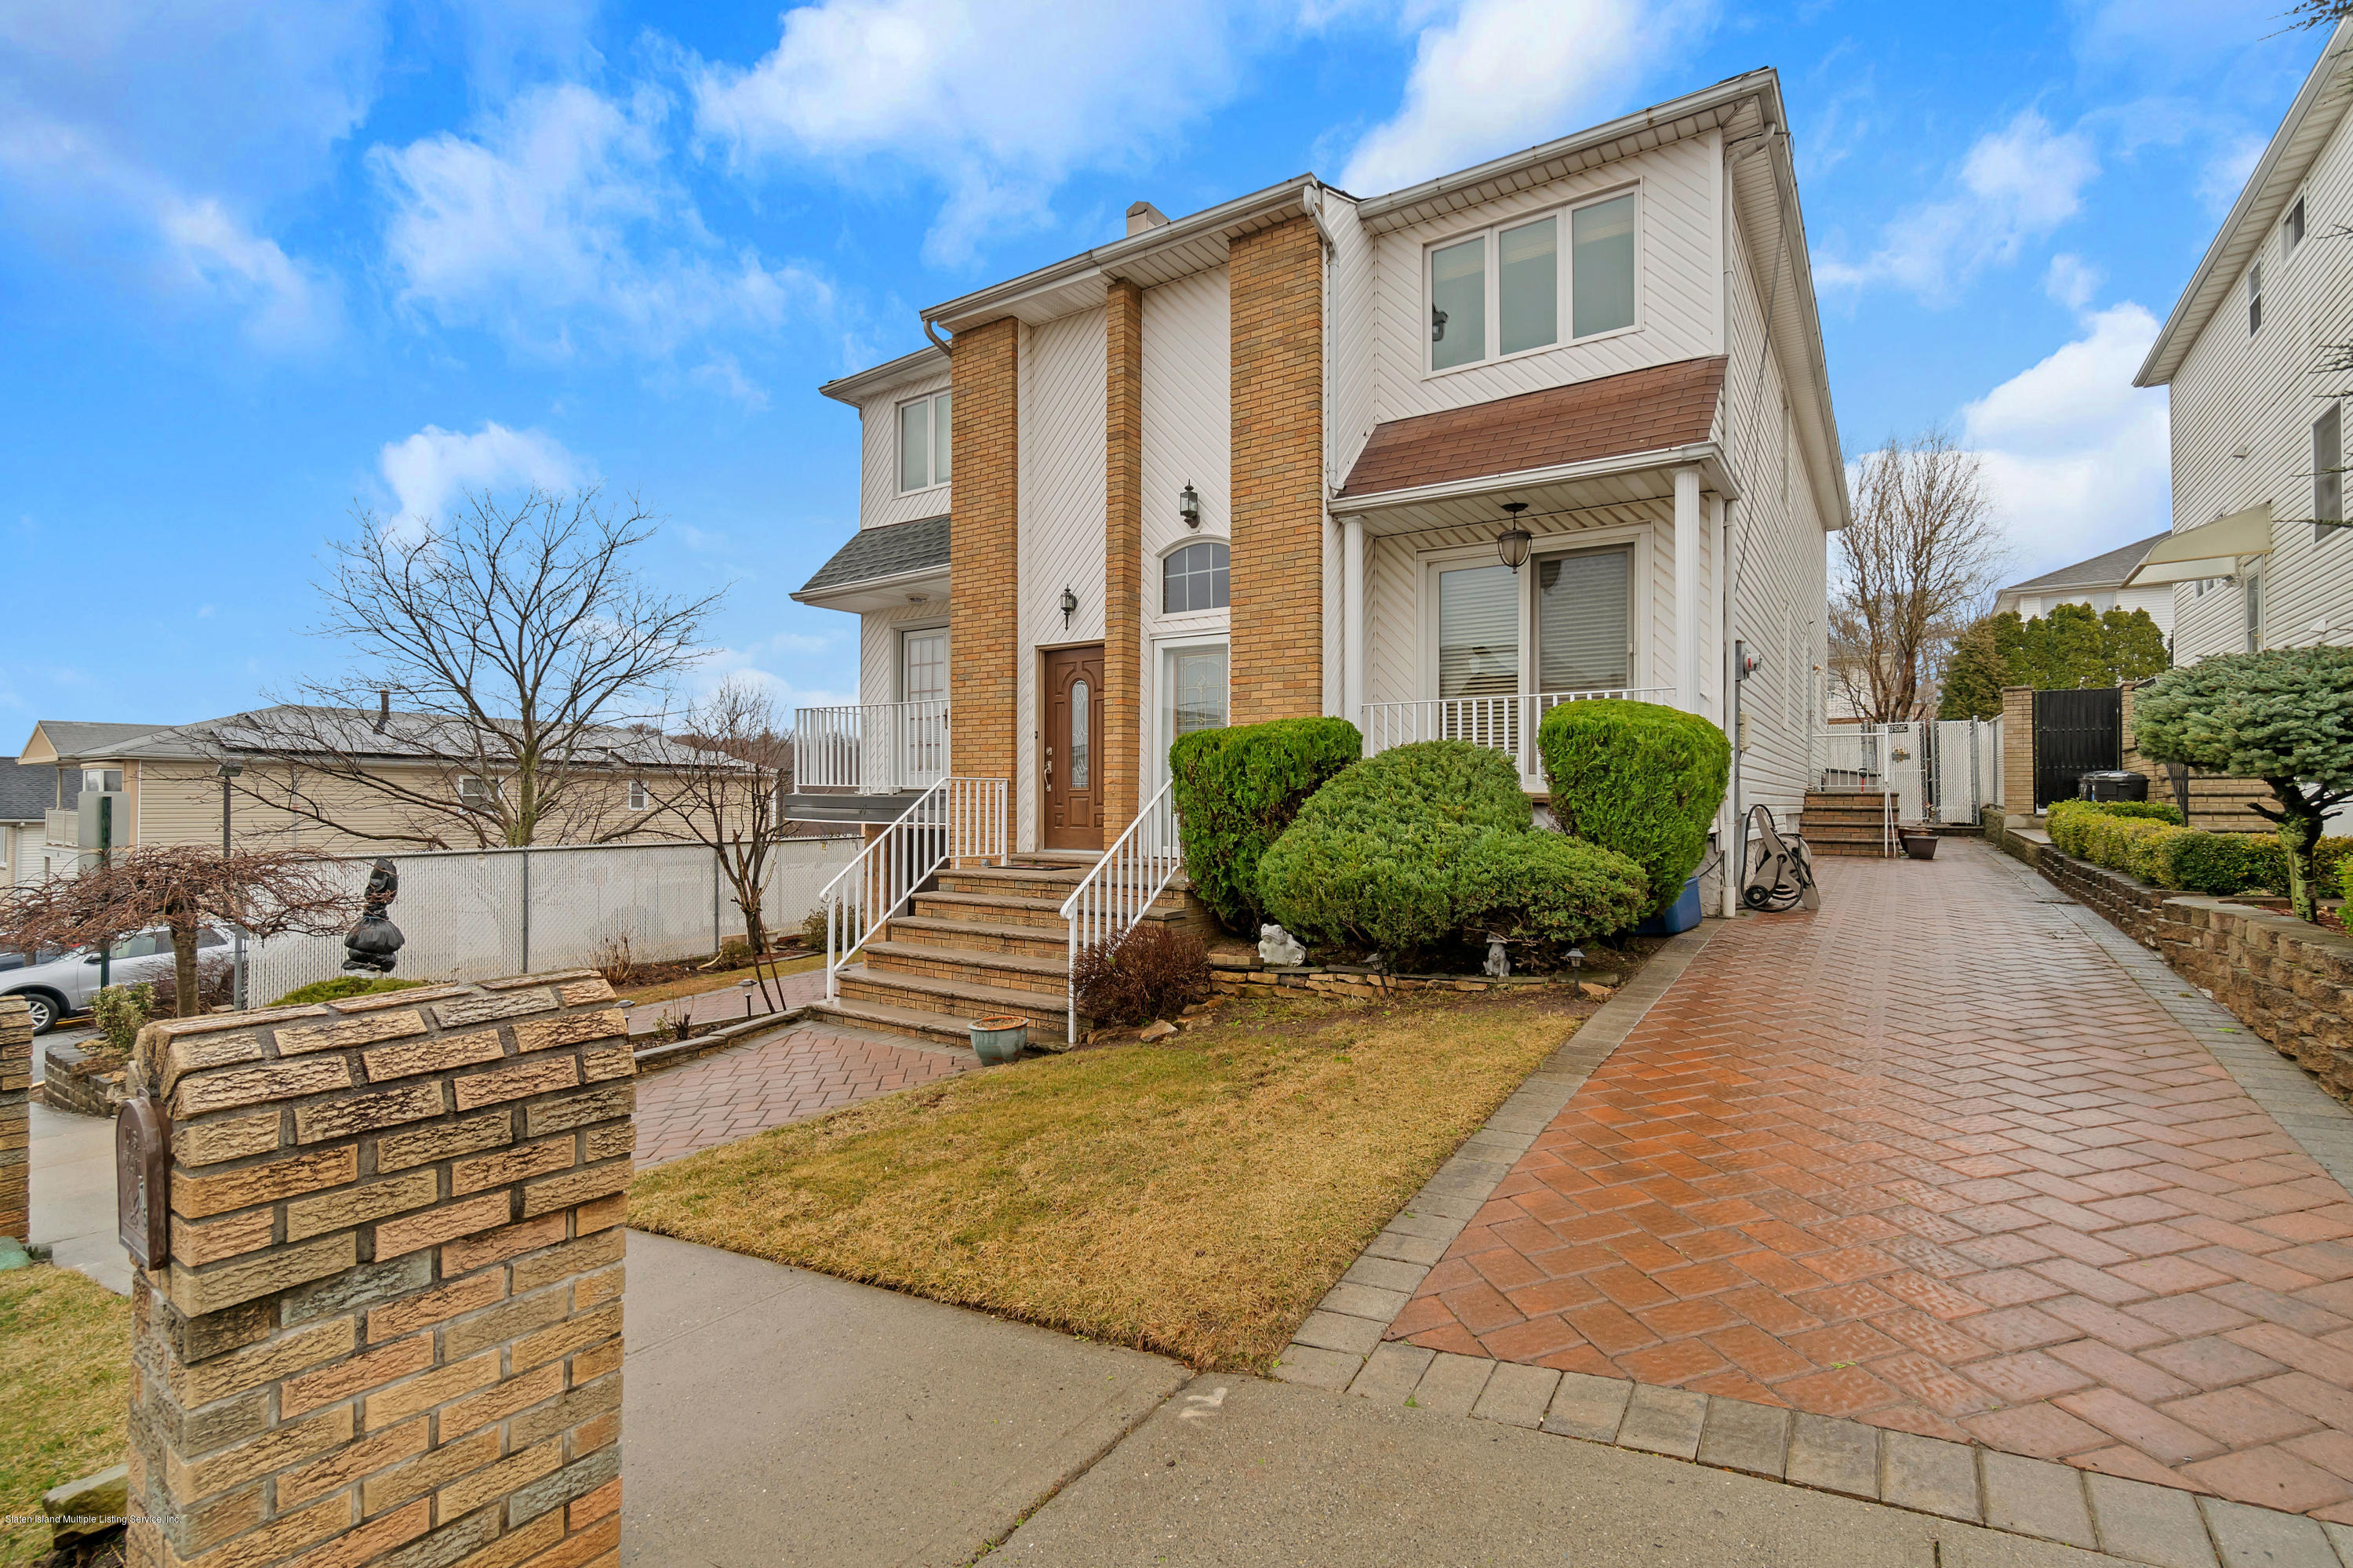 Single Family - Semi-Attached in Emerson Hill - 75 Hewitt Avenue  Staten Island, NY 10301